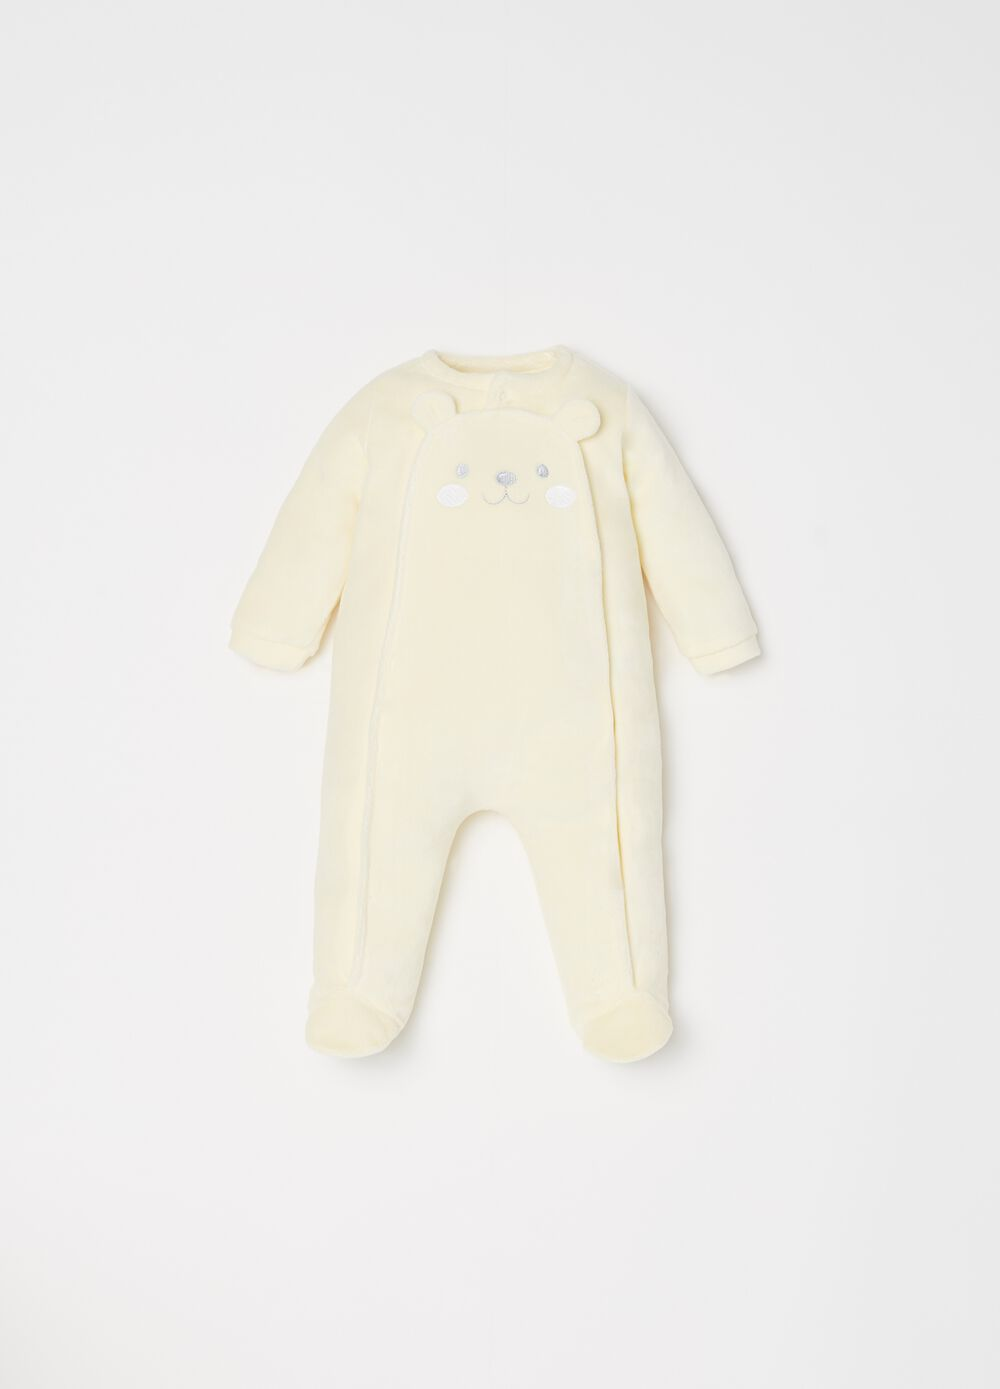 Onesie with feet, embroidery and buttons